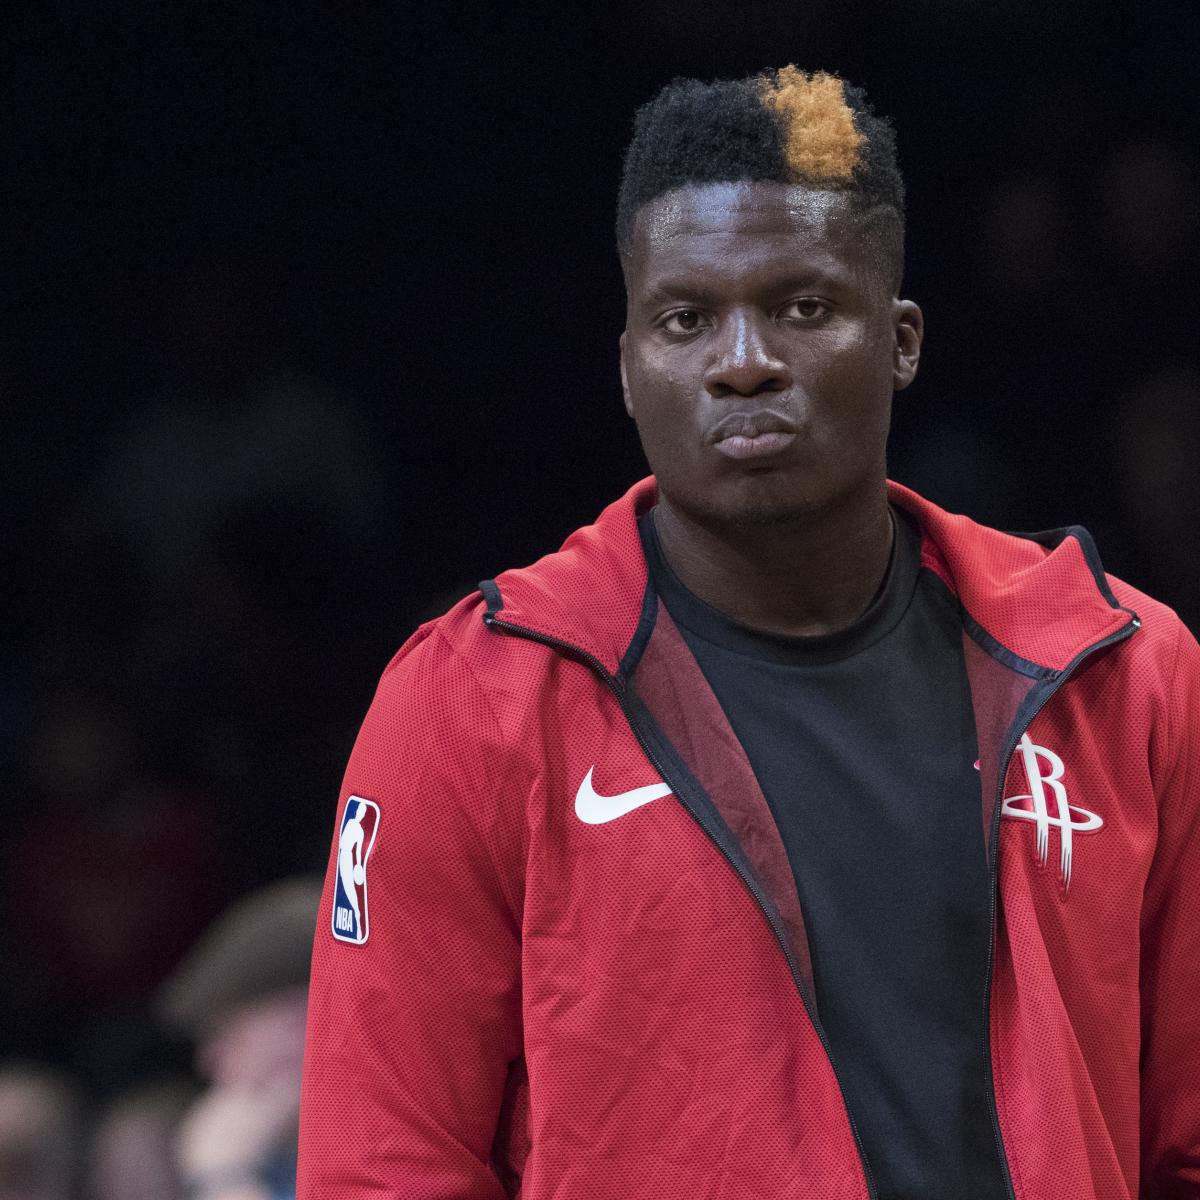 Houston Rockets Record 2018: Clint Capela's Growth And Importance Becoming Increasingly